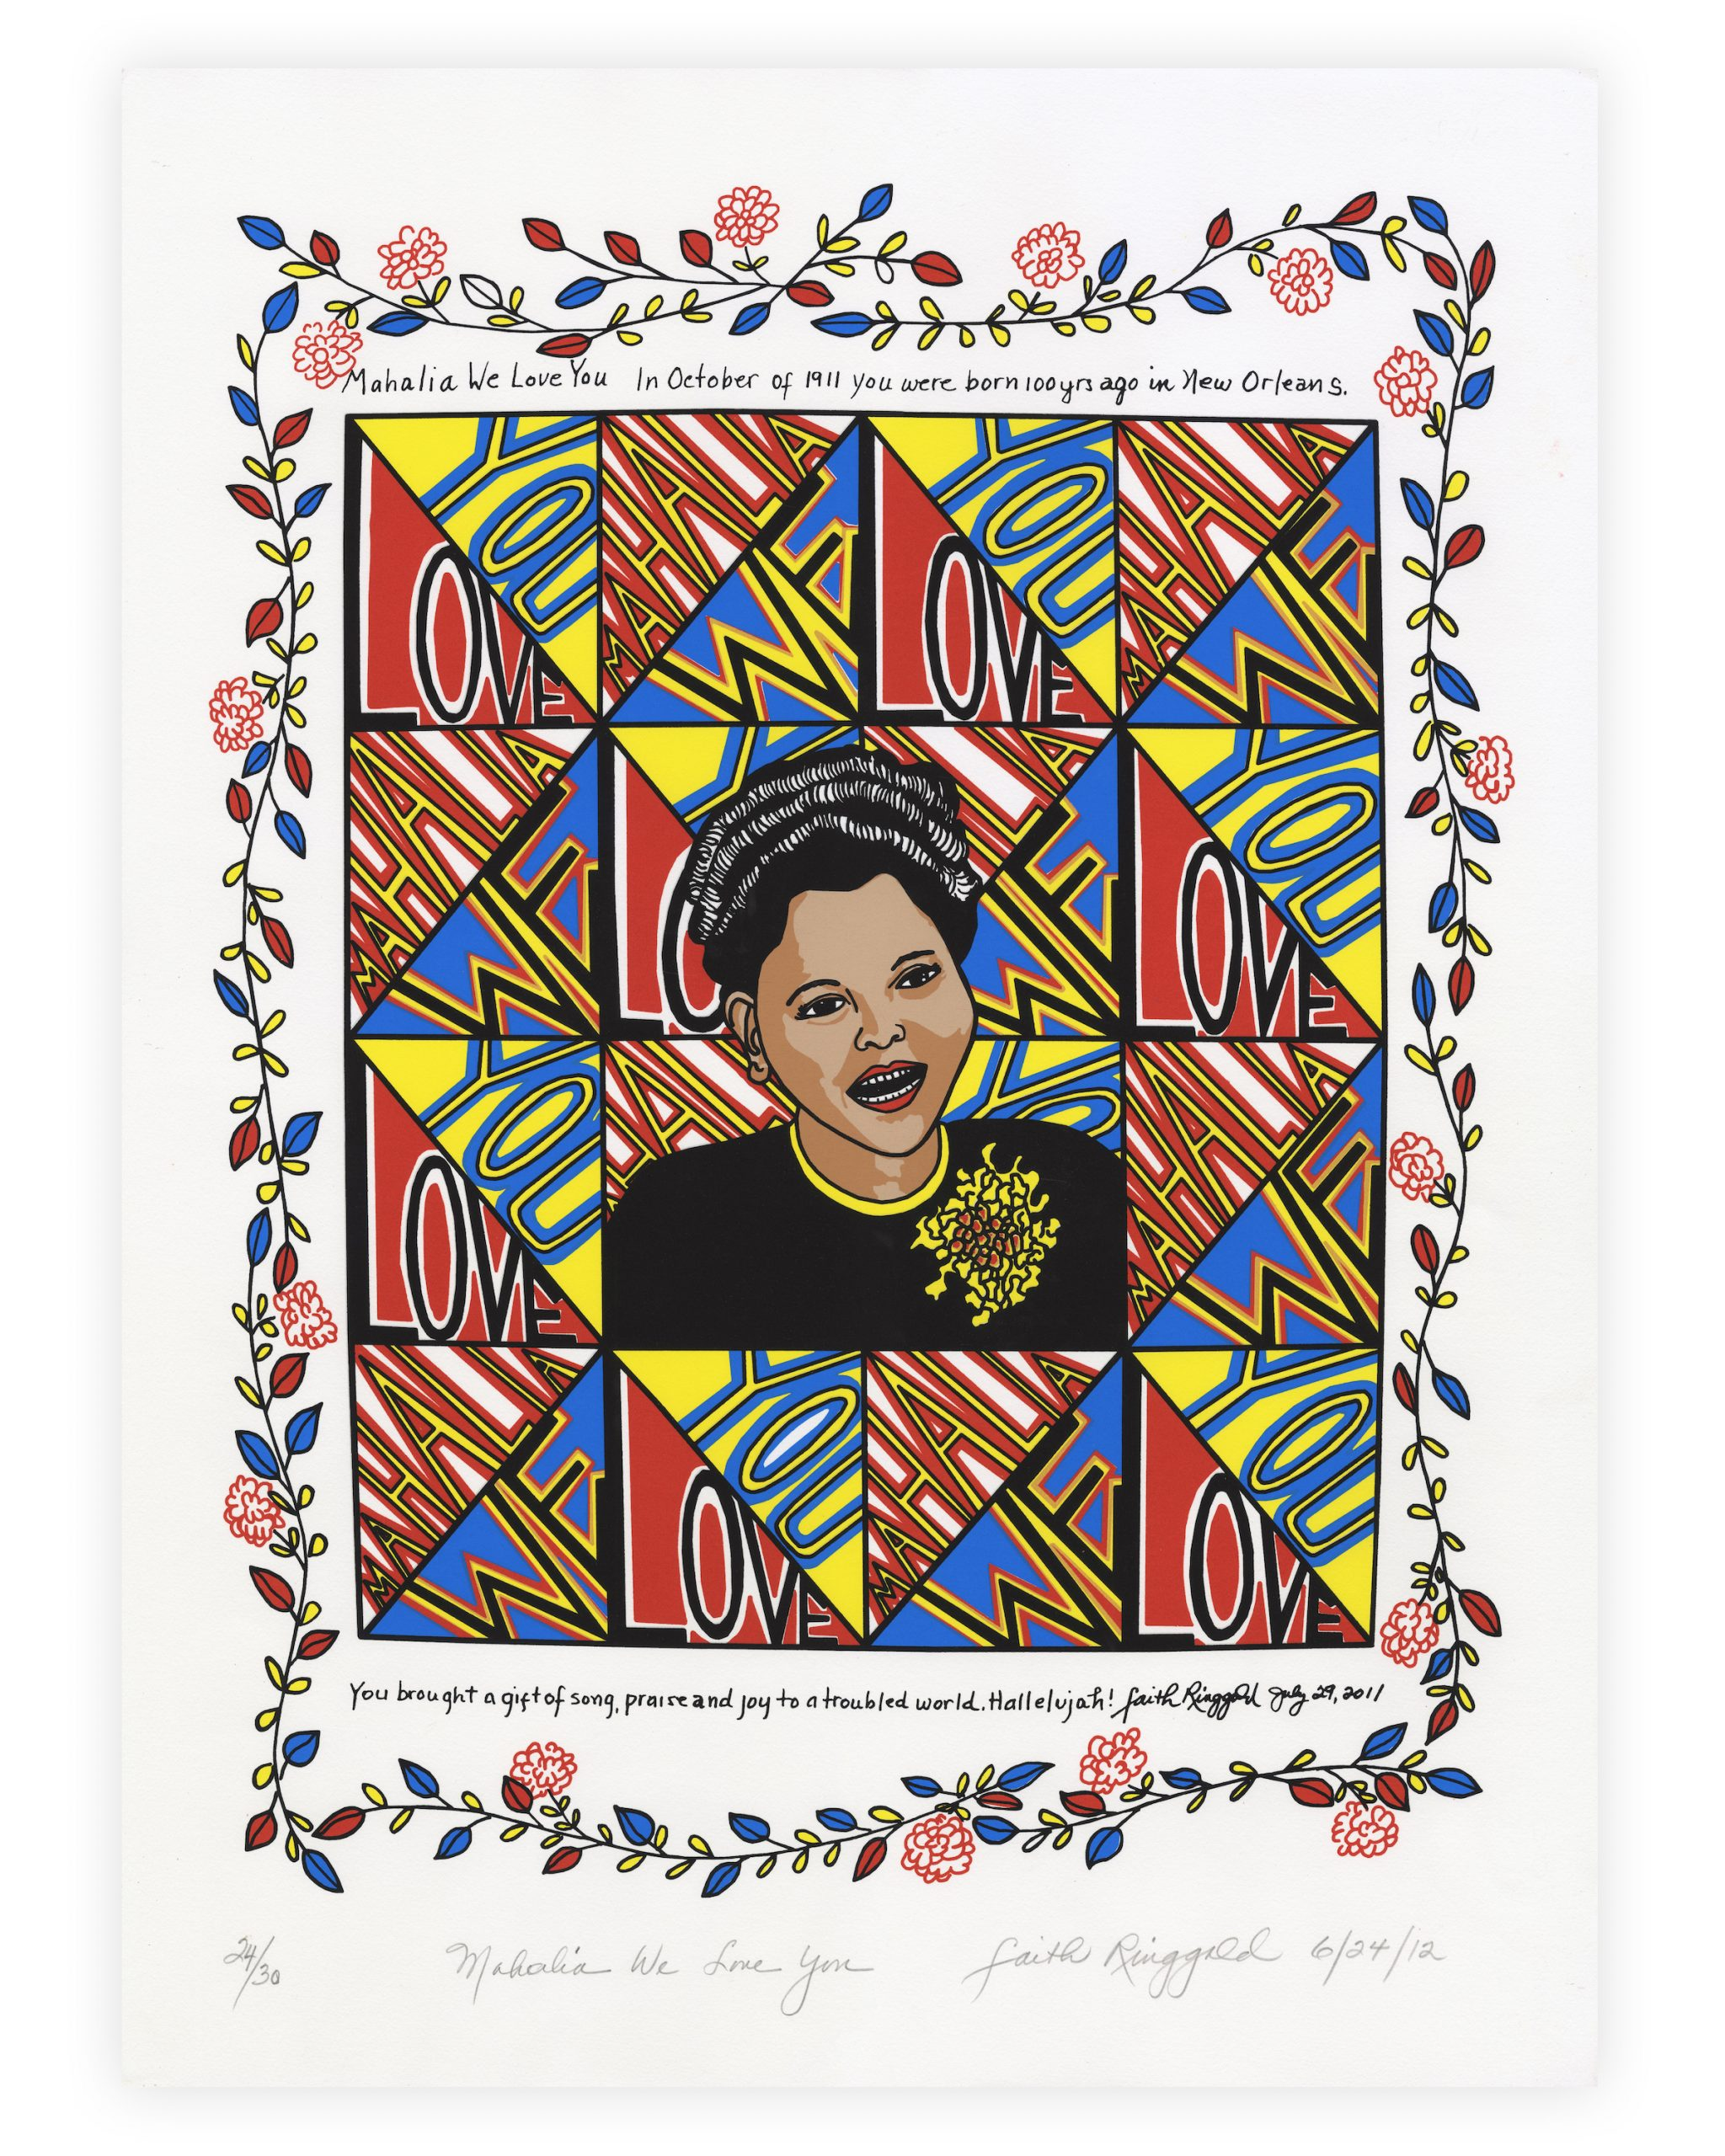 """A portrait of singer Mahalia Jackson, surrounded by the phrase """"We Love You"""" and flowers."""